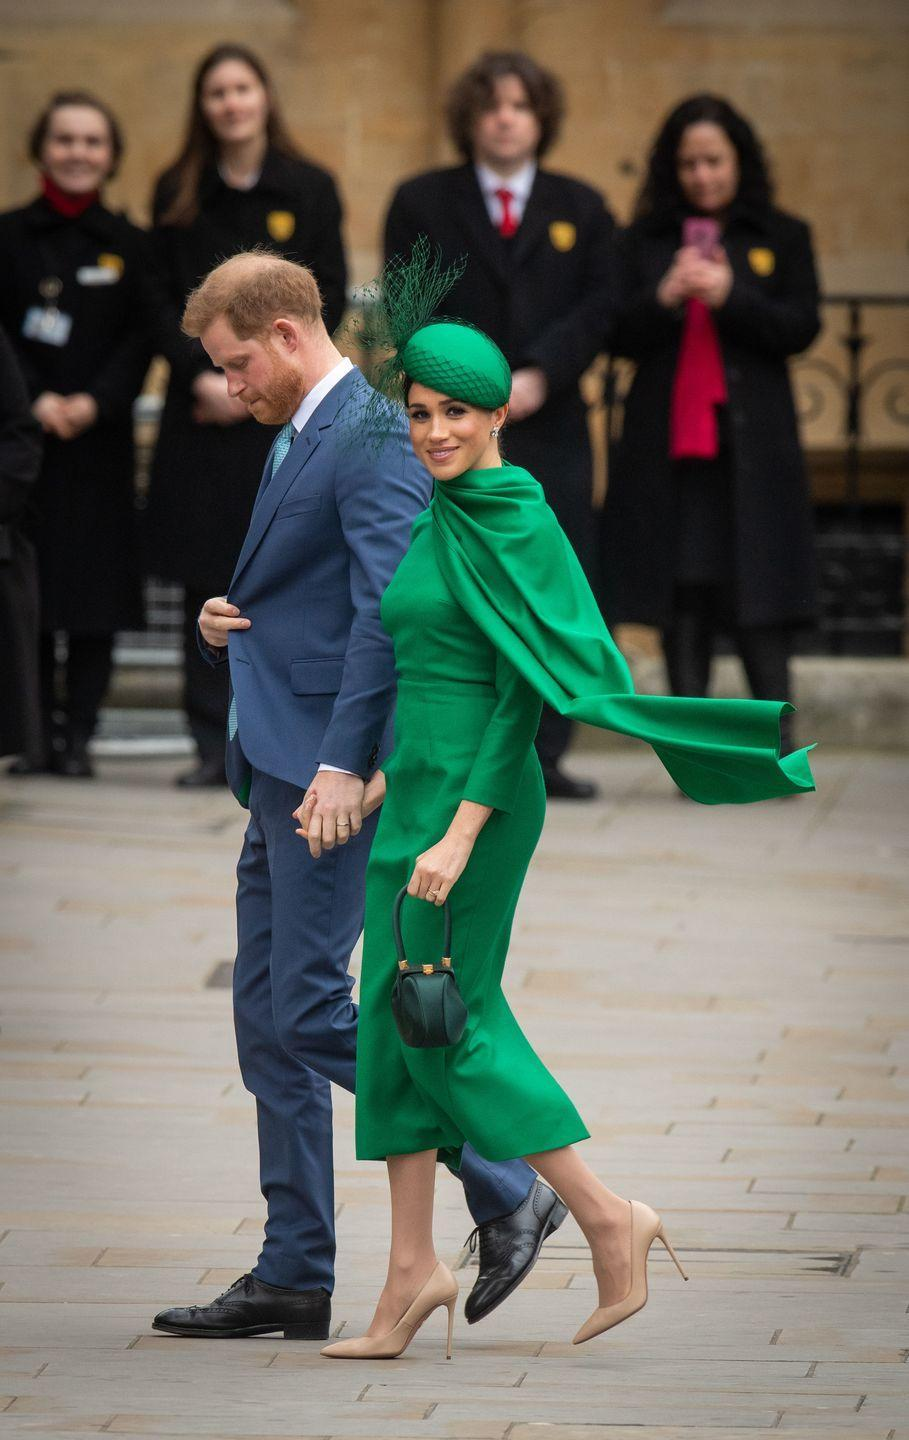 "<p>The Duchess arrived at Westminster Abbey for the annual Commonwealth Day Service <a href=""https://www.townandcountrymag.com/society/tradition/a31279858/meghan-markle-green-emilia-wickstead-dress-commonwealth-day-service-photos-2020/"" rel=""nofollow noopener"" target=""_blank"" data-ylk=""slk:wearing a stunning Emilia Wickstead dress"" class=""link rapid-noclick-resp"">wearing a stunning Emilia Wickstead dress</a>, paired with a William Chambers hat, Aquazzura heels, and a Gabriella Hearst bag.</p>"